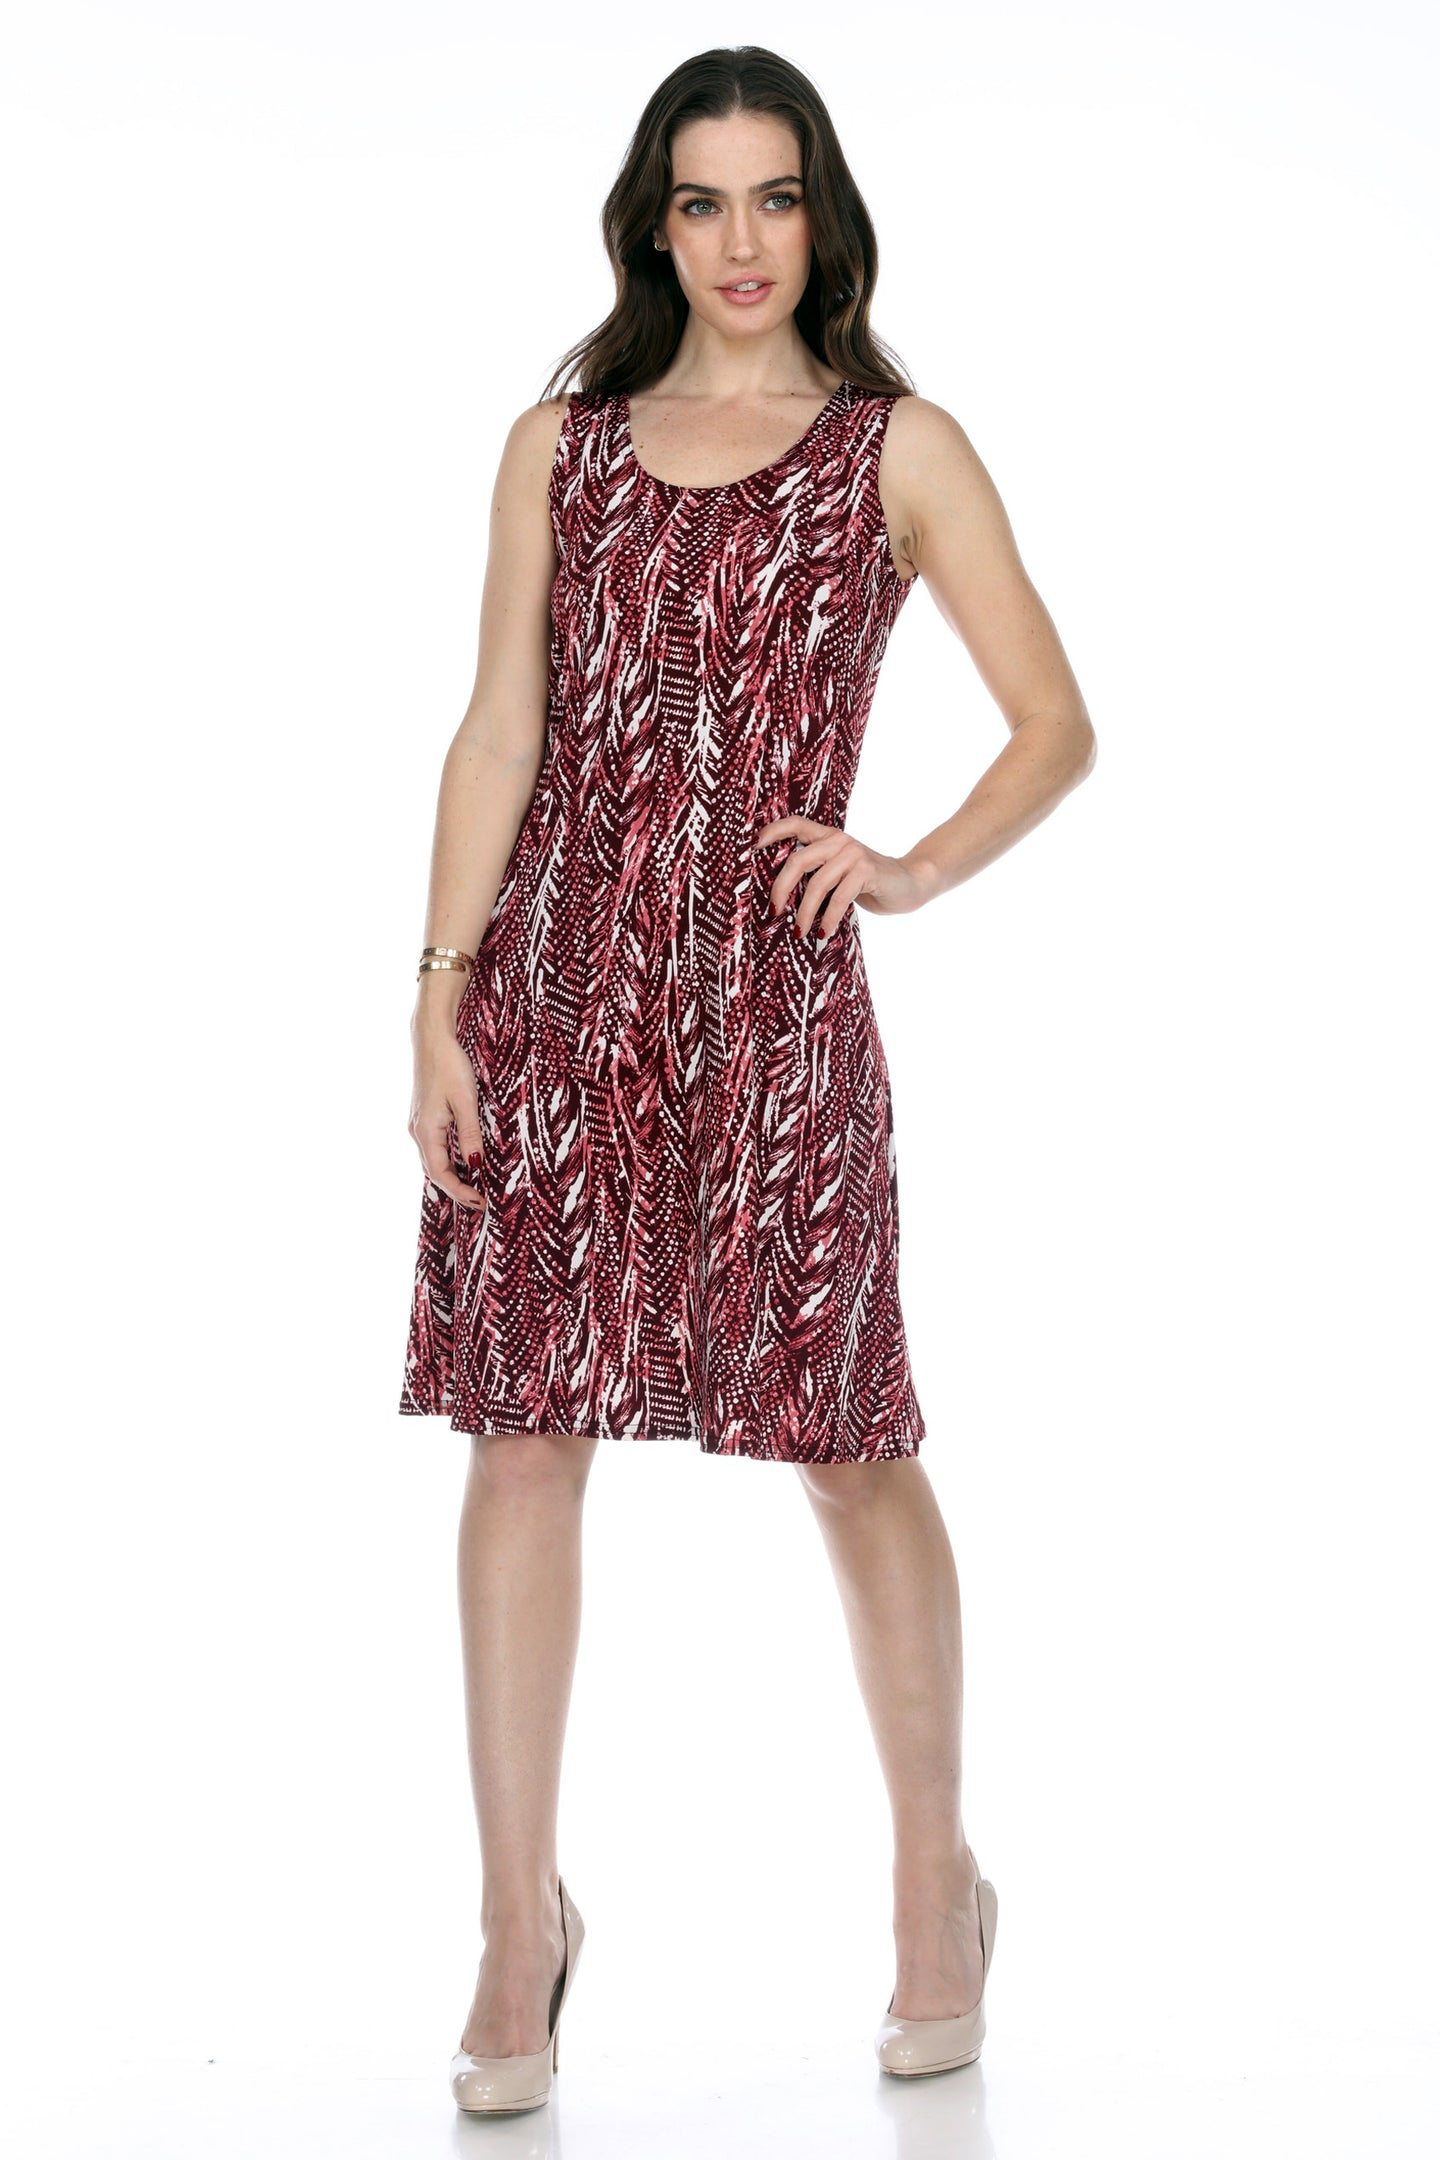 Jostar Women's Stretchy Missy Tank Dress Print Plus, 703BN-TXP-W247